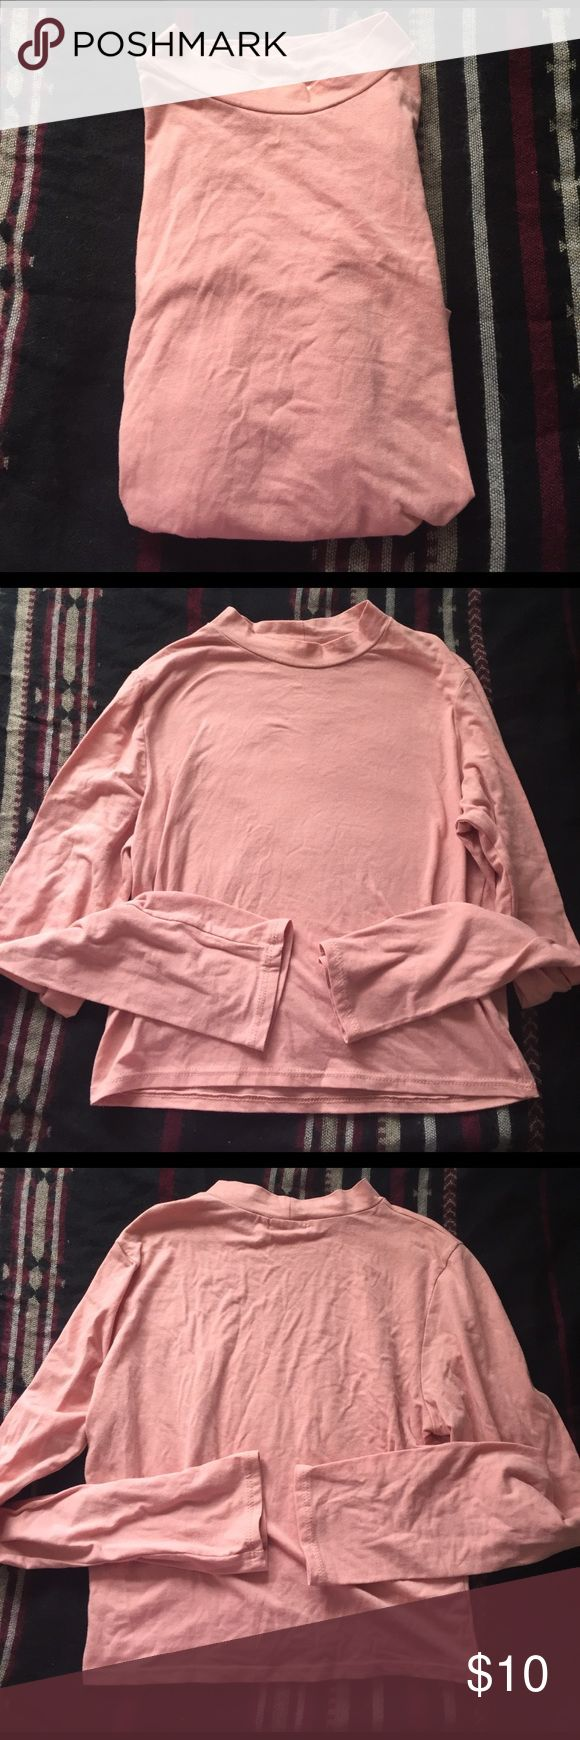 Wet seal long sleeve crop top Wet seal long sleeve crop top, size L only worn once for an oversized crop top look (Im a s-m) Wet Seal Tops Crop Tops